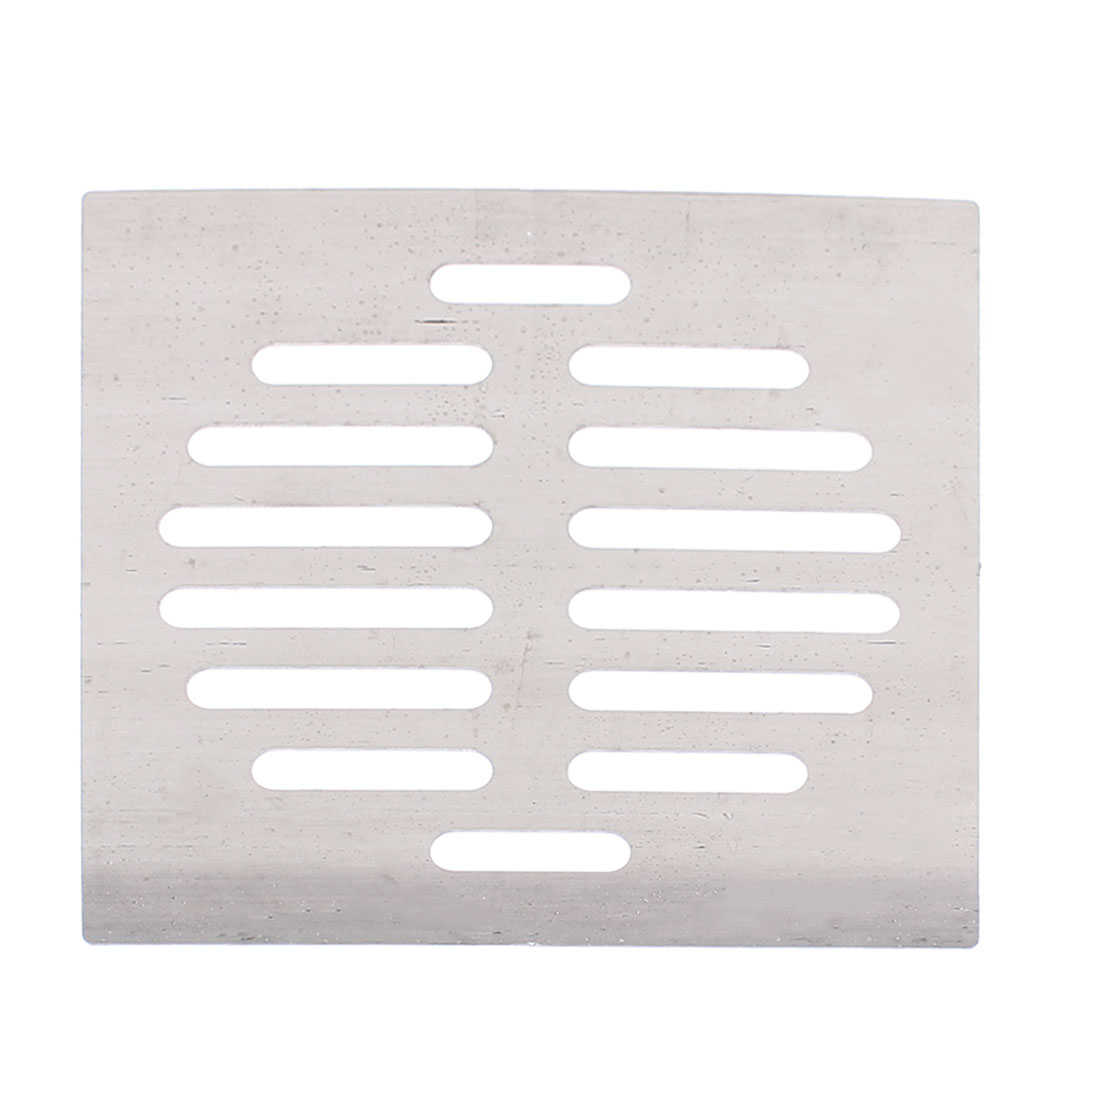 Stainless Steel Kitchen Bathroom Square Floor Drain Cover 4.4' 11.3cm